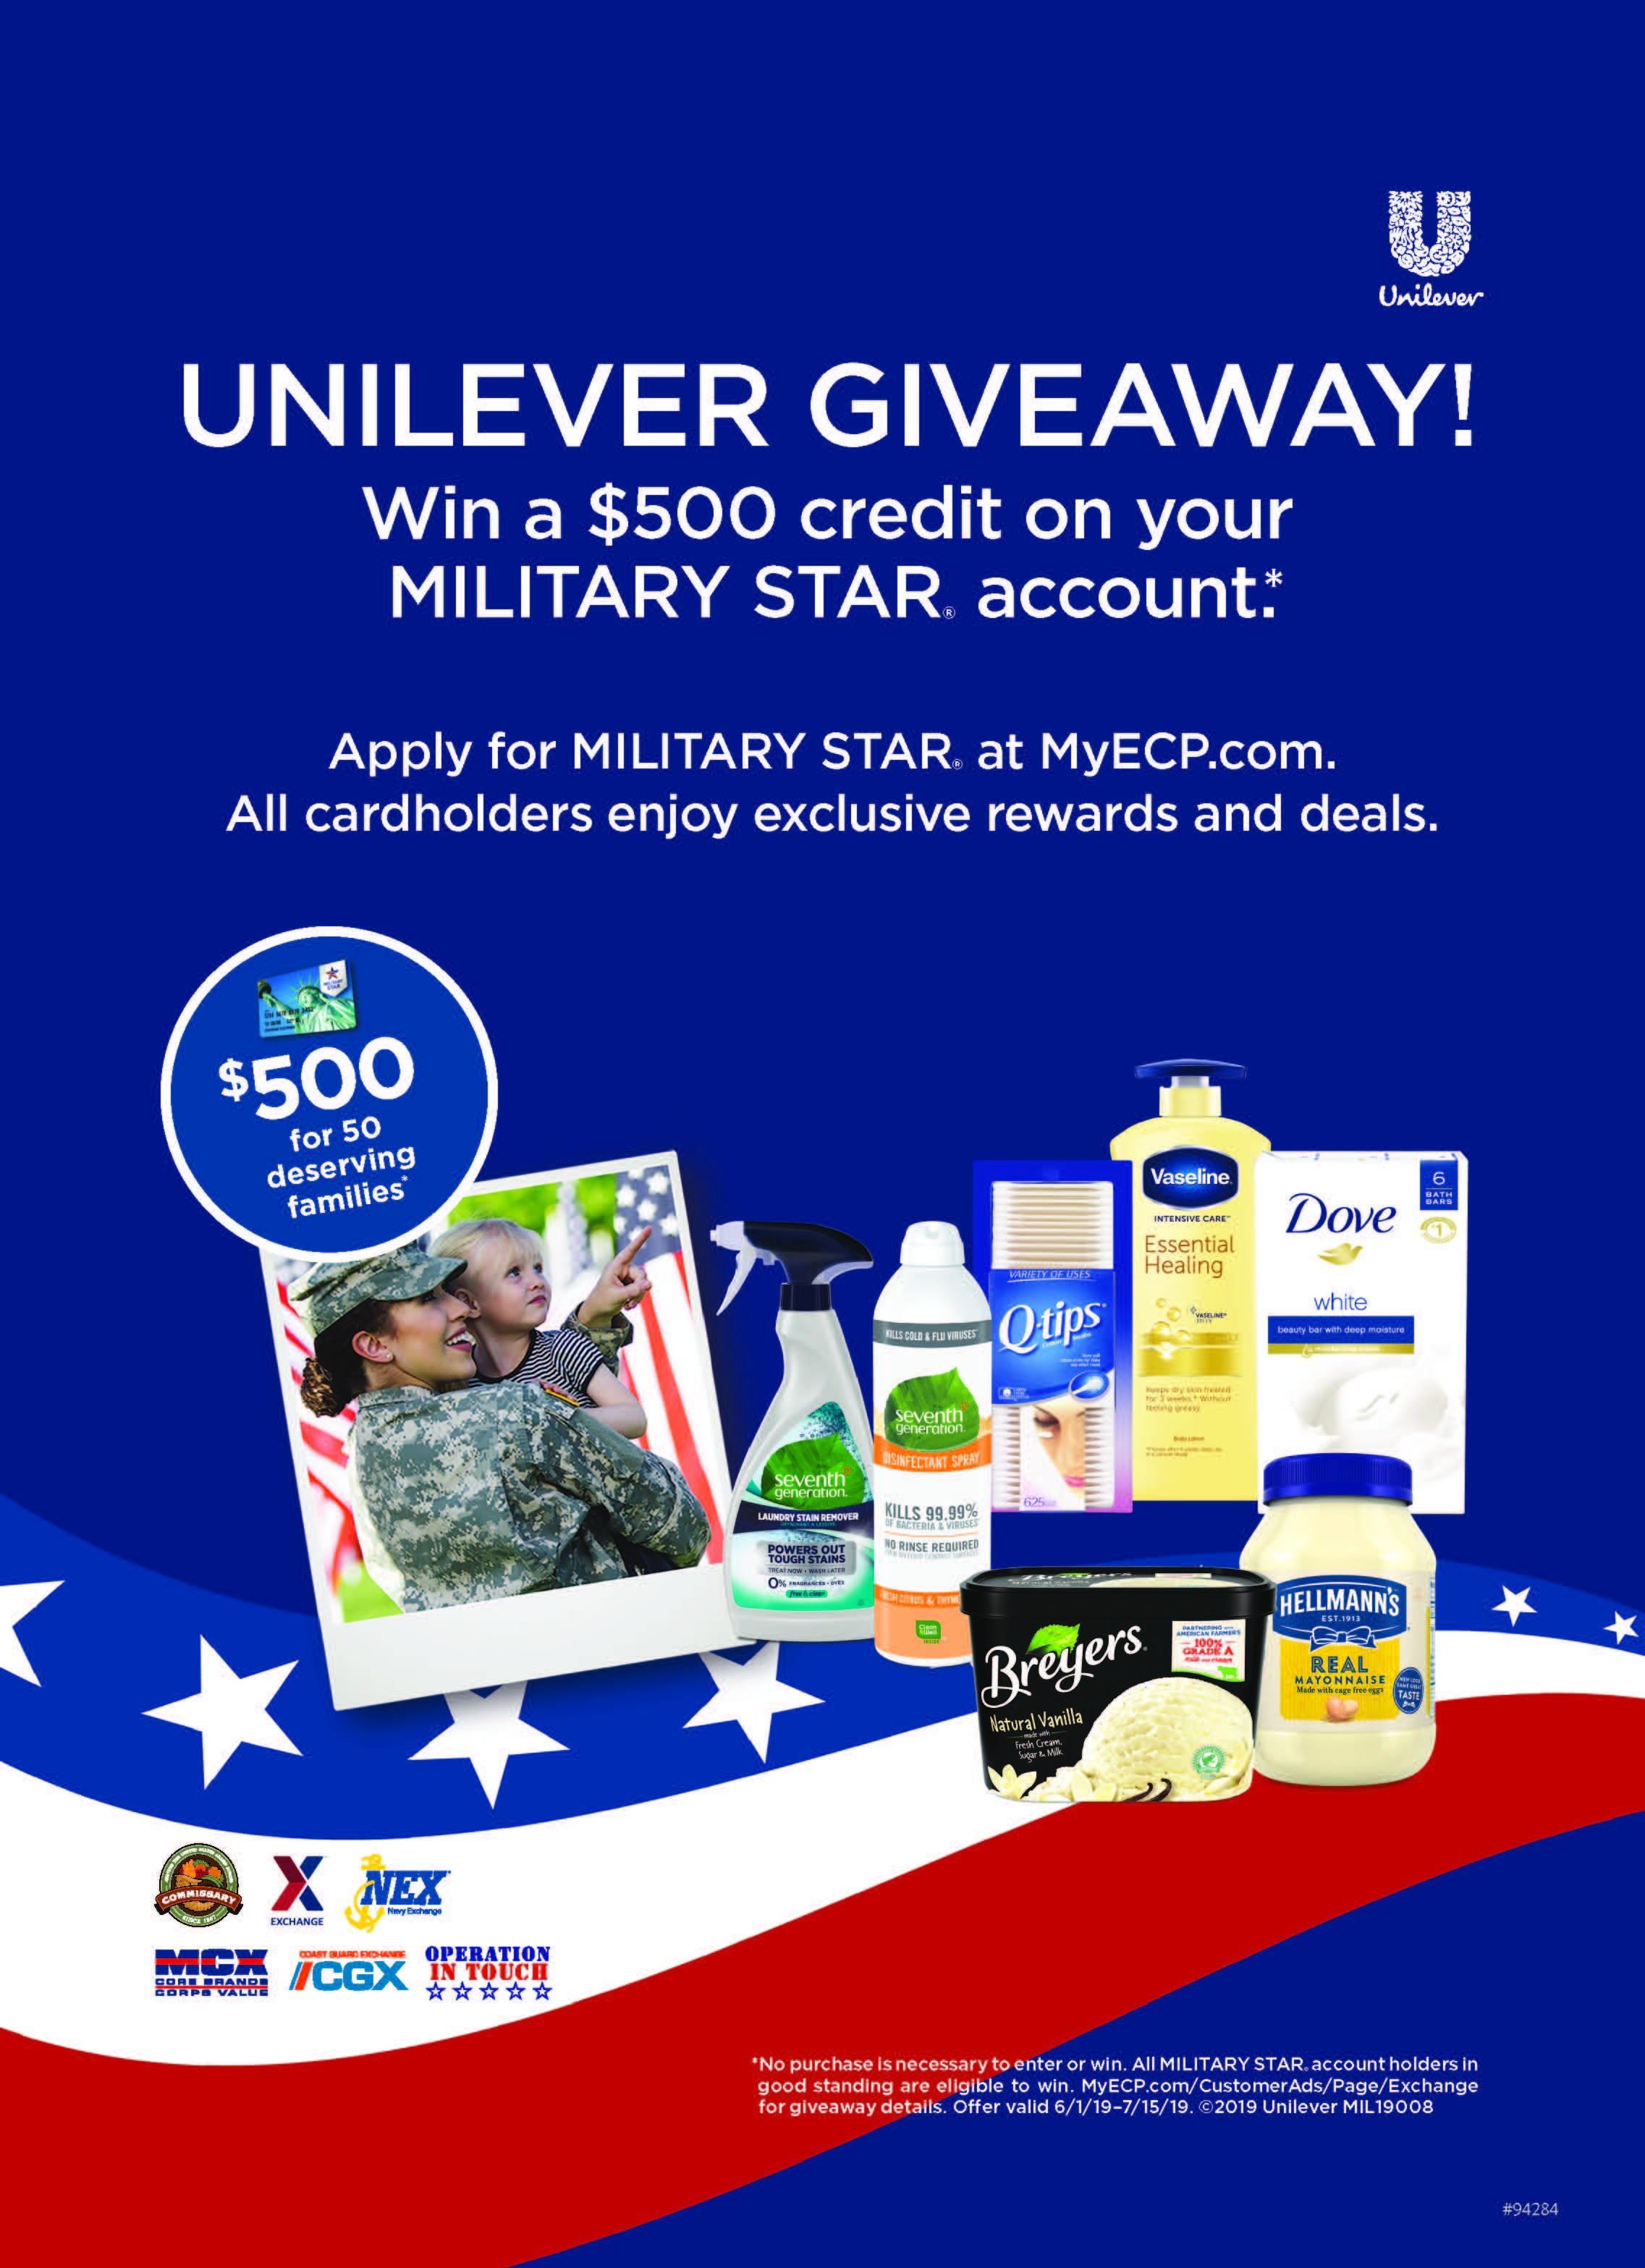 MILITARY STAR shoppers have chance at $25,000 in prizes in